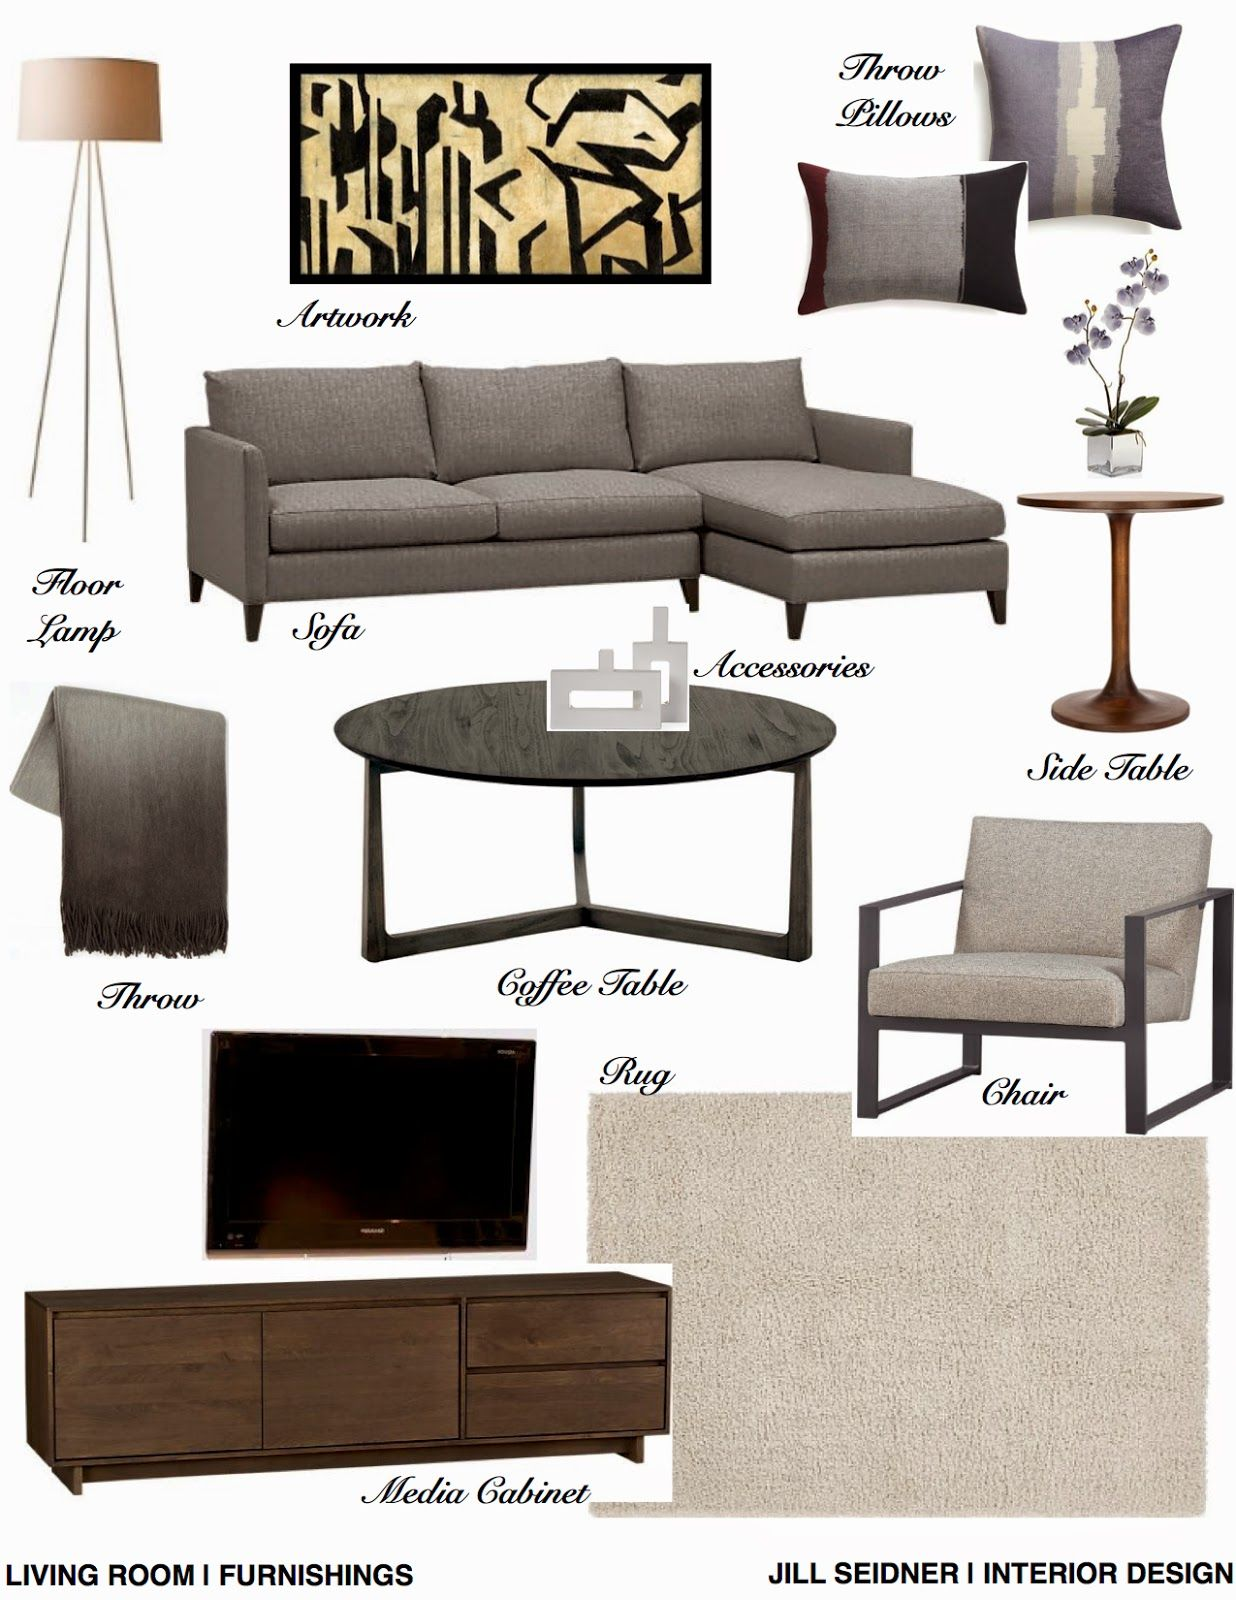 Living Room Design Concepts Inspiration Jill Seidner  Interior Design Concept Boards  My Apartment Design Inspiration